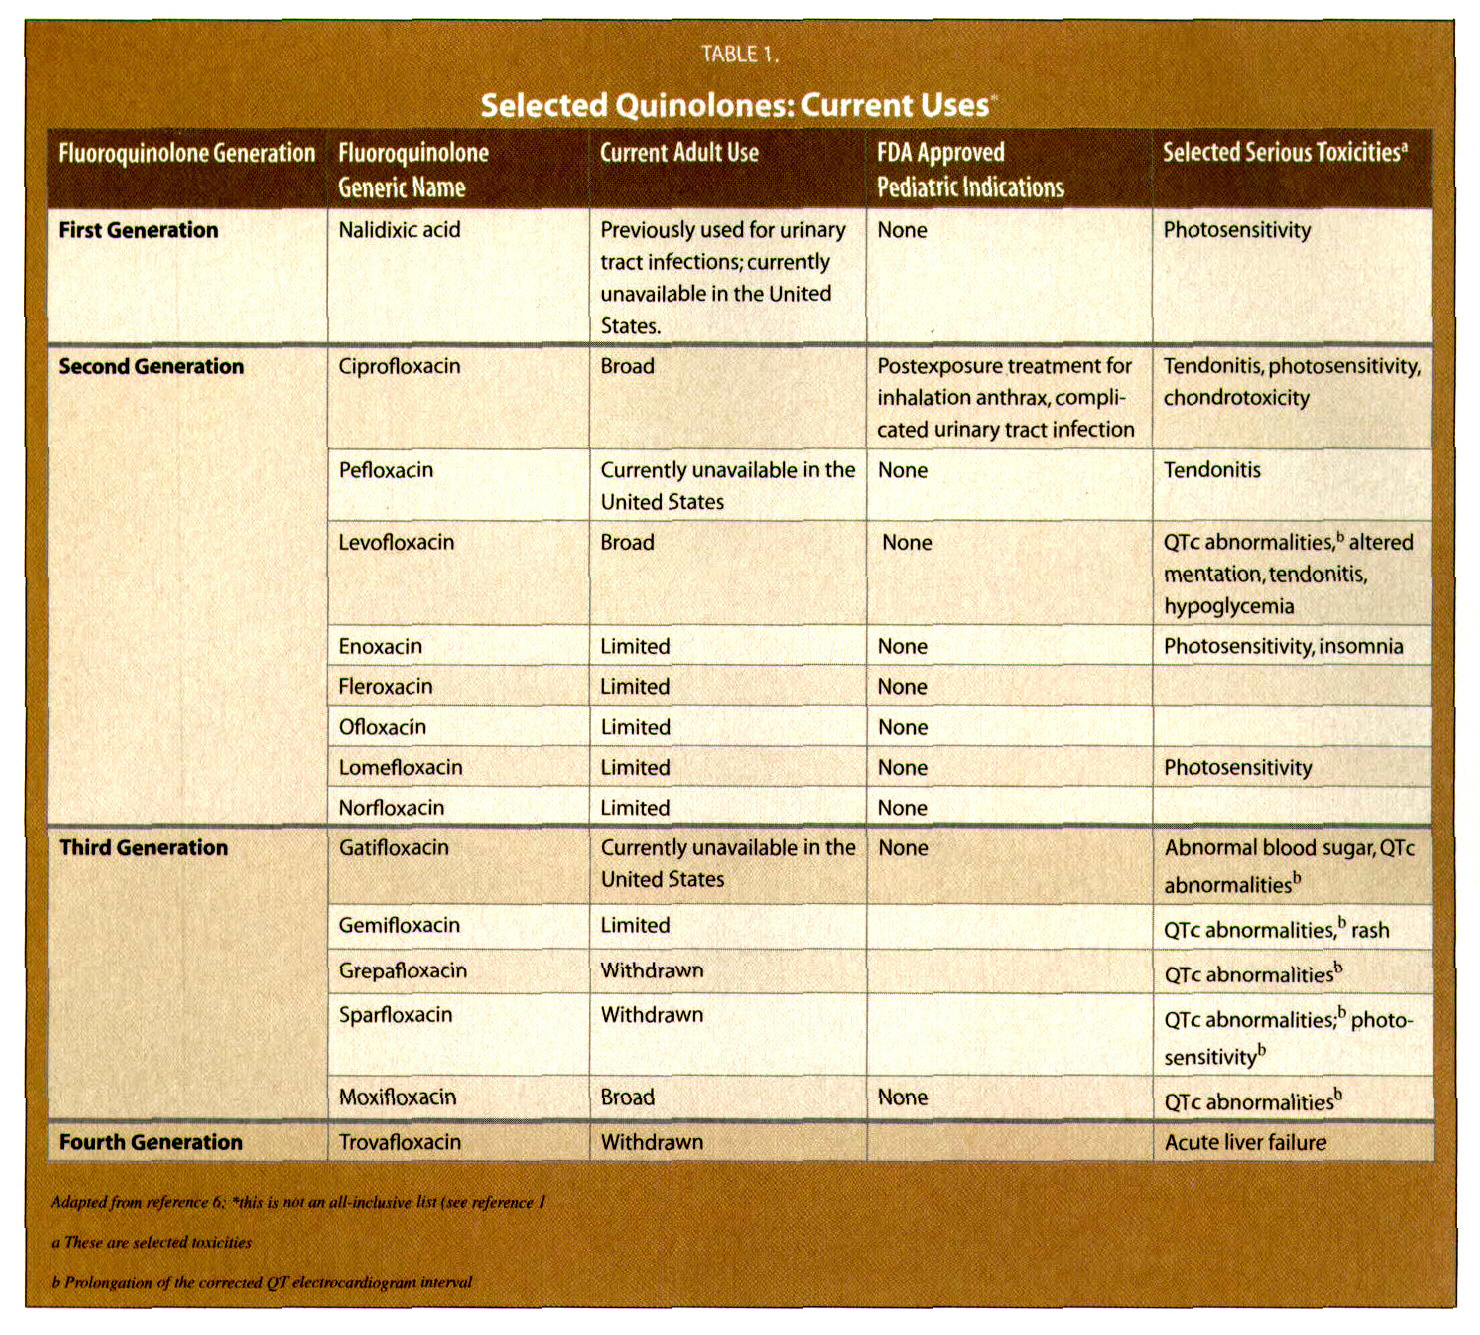 Table 1.Selected Quinolones: Current Uses*